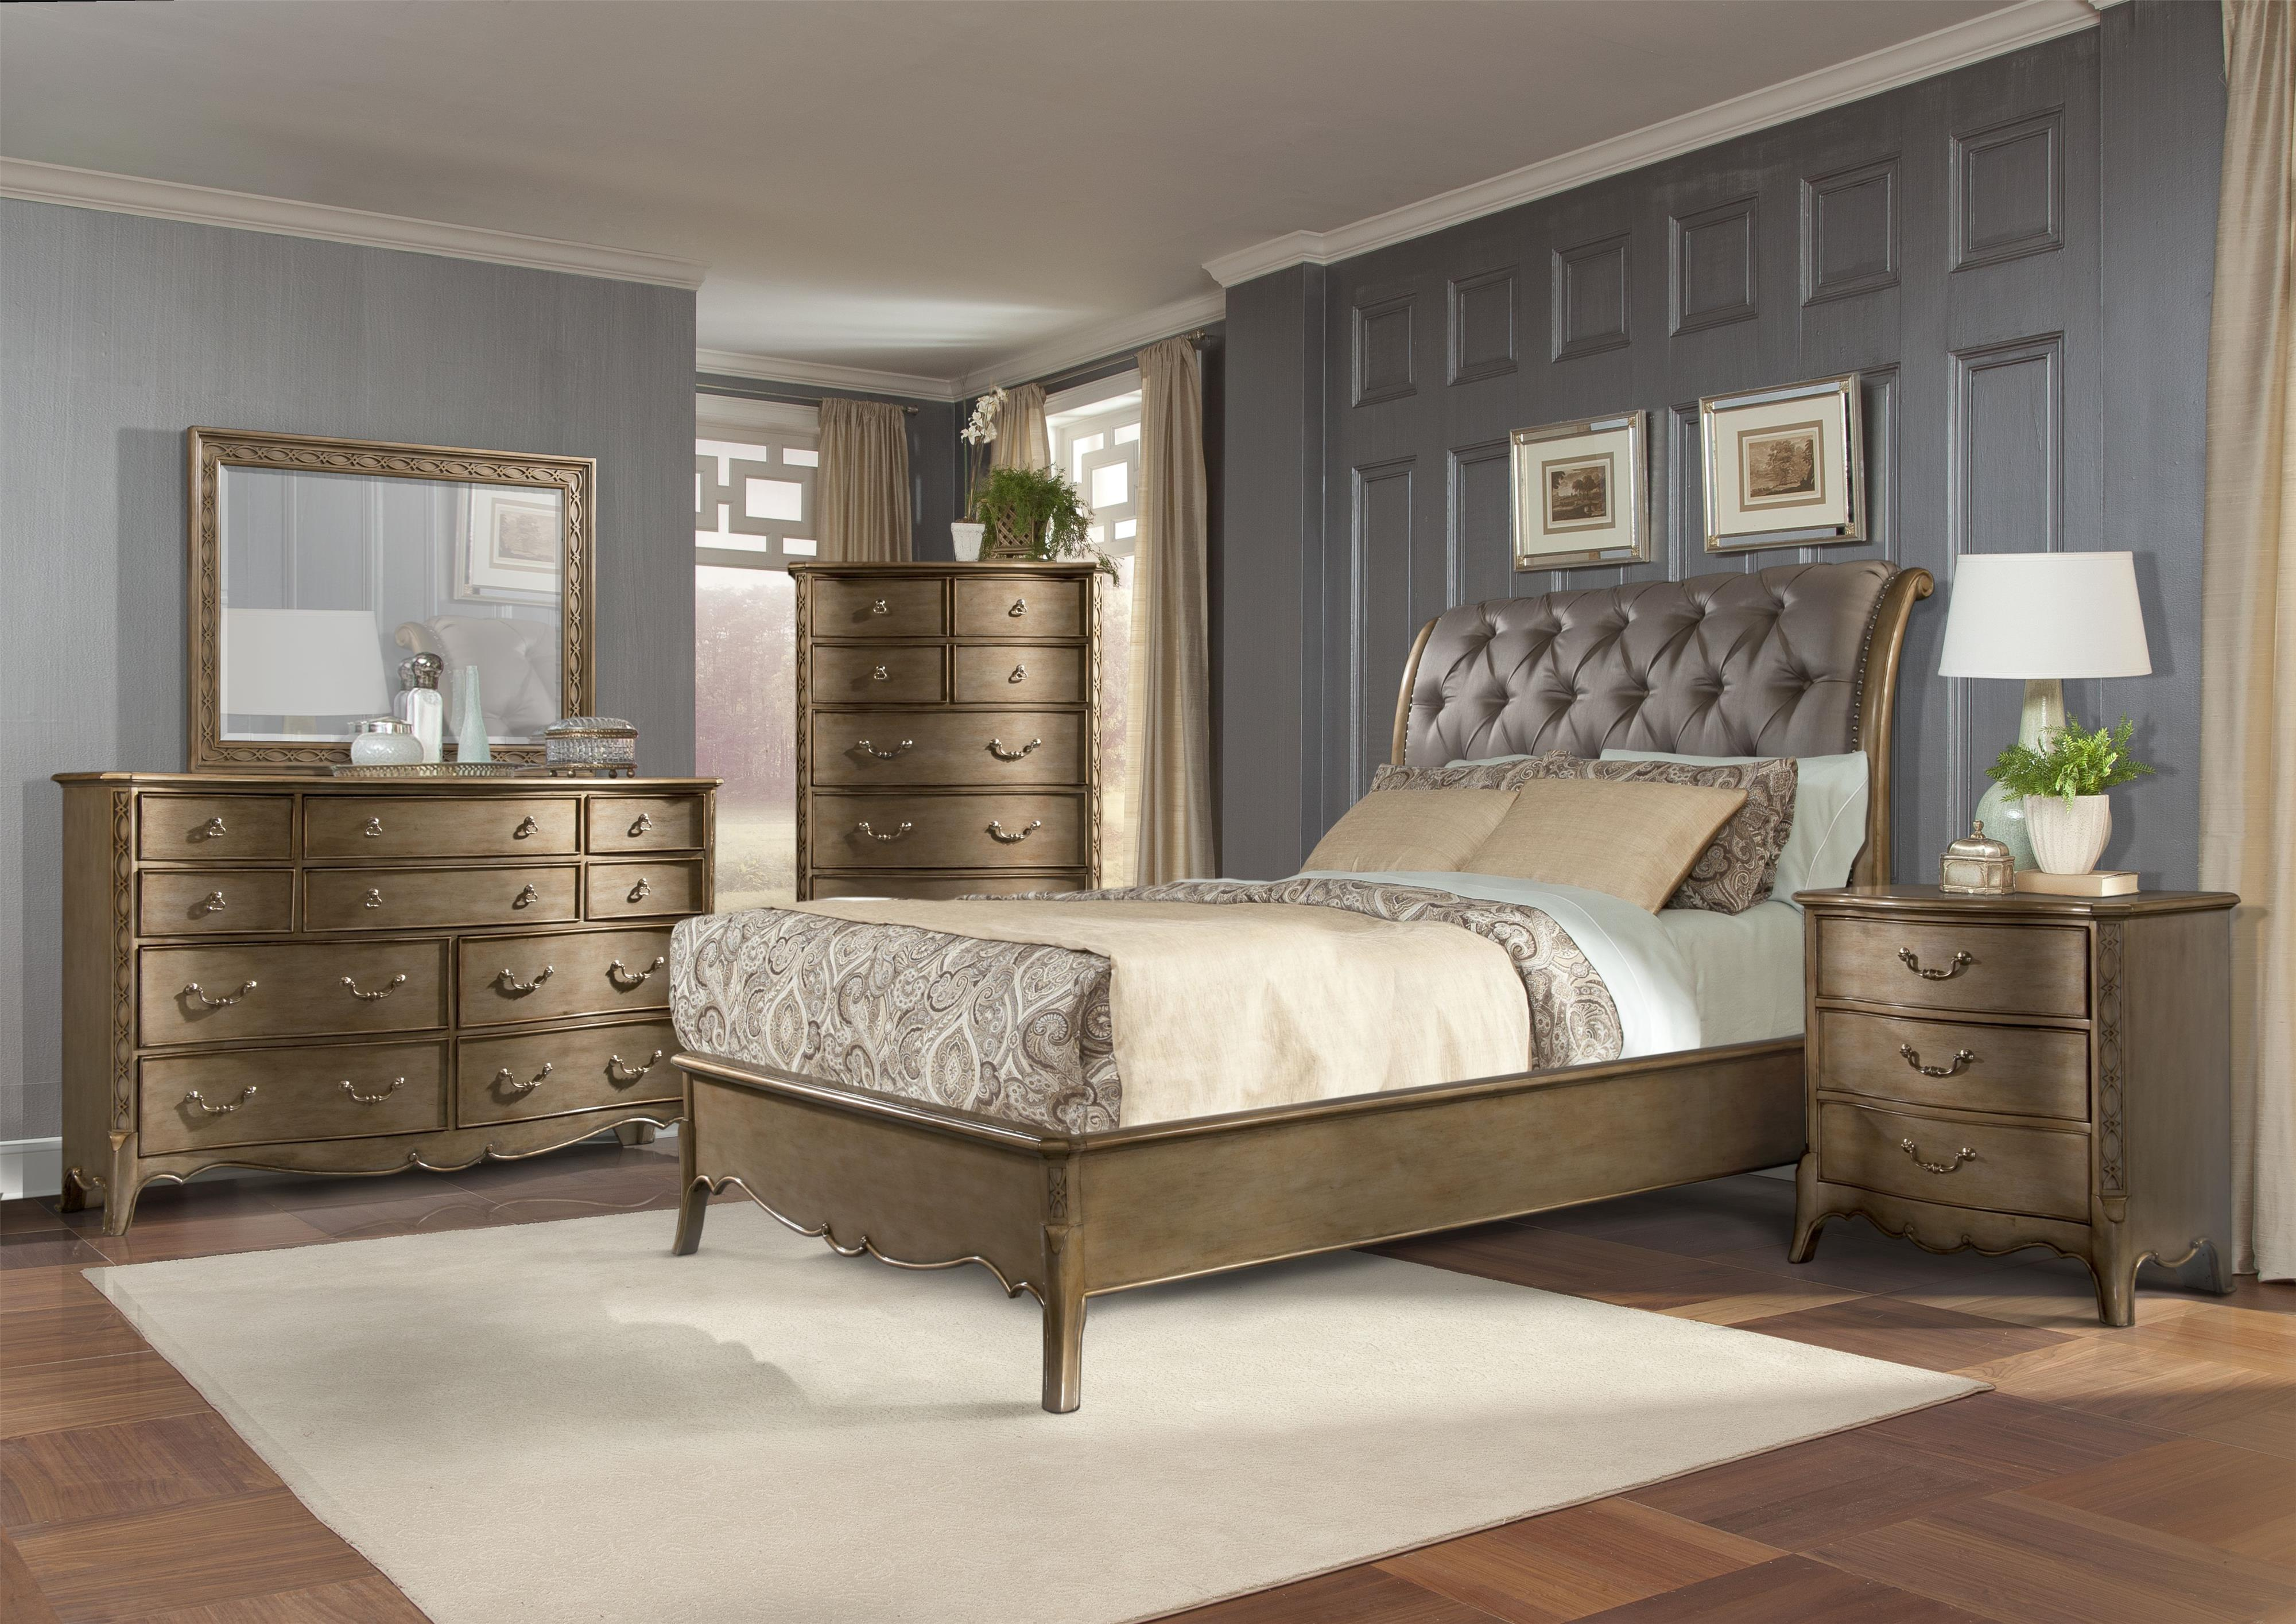 Homelegance Chambord Queen Bedroom Group   Item Number  1828 Q Bedroom  Group 1. Homelegance Chambord Queen Bedroom Group   Fisher Home Furnishings